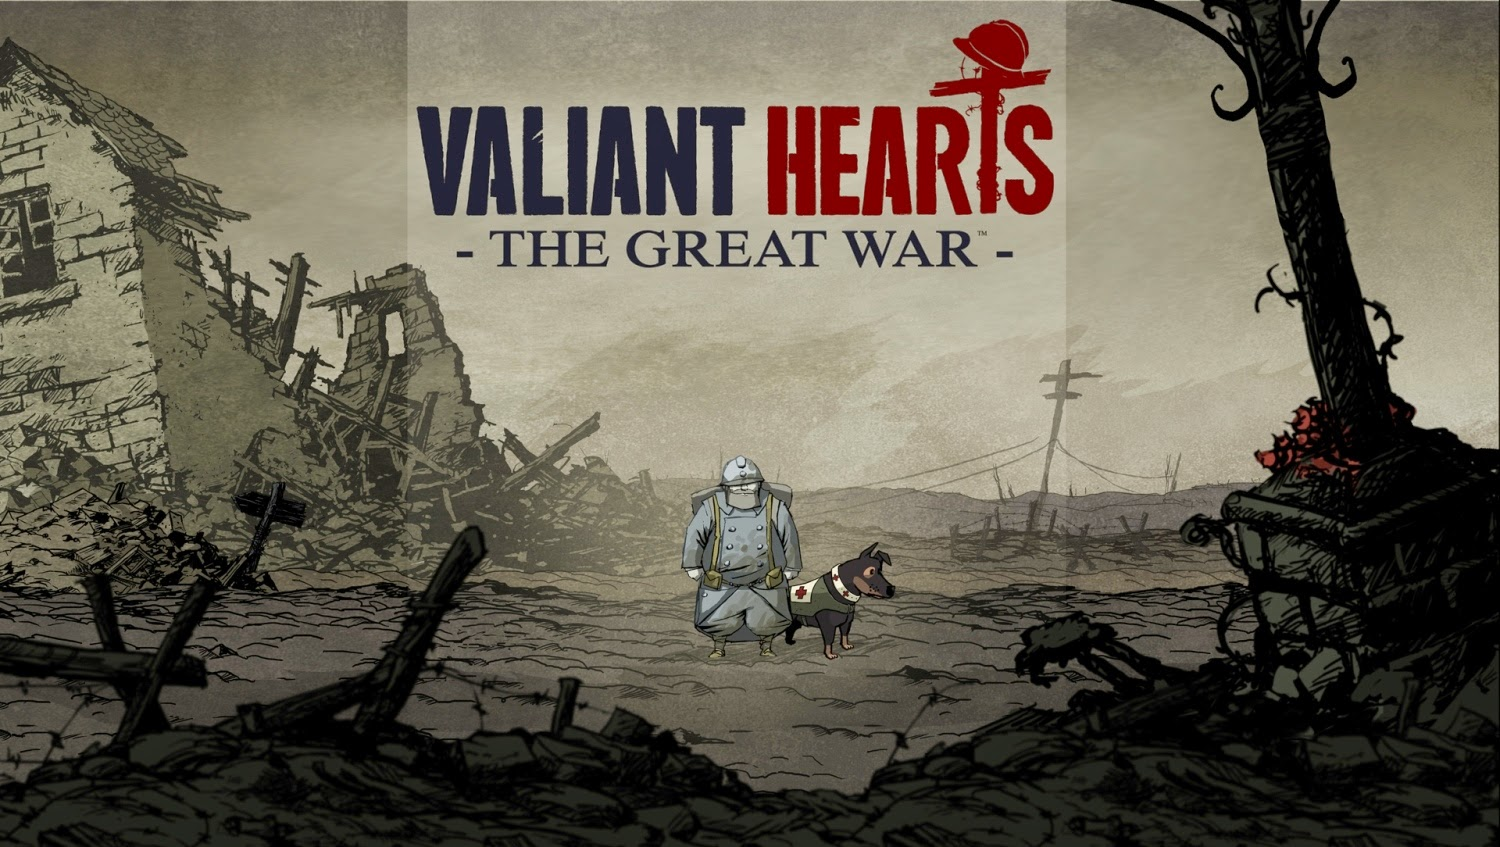 Spesifikasi PC Untuk Valiant hearts - The great war (Ubisoft)